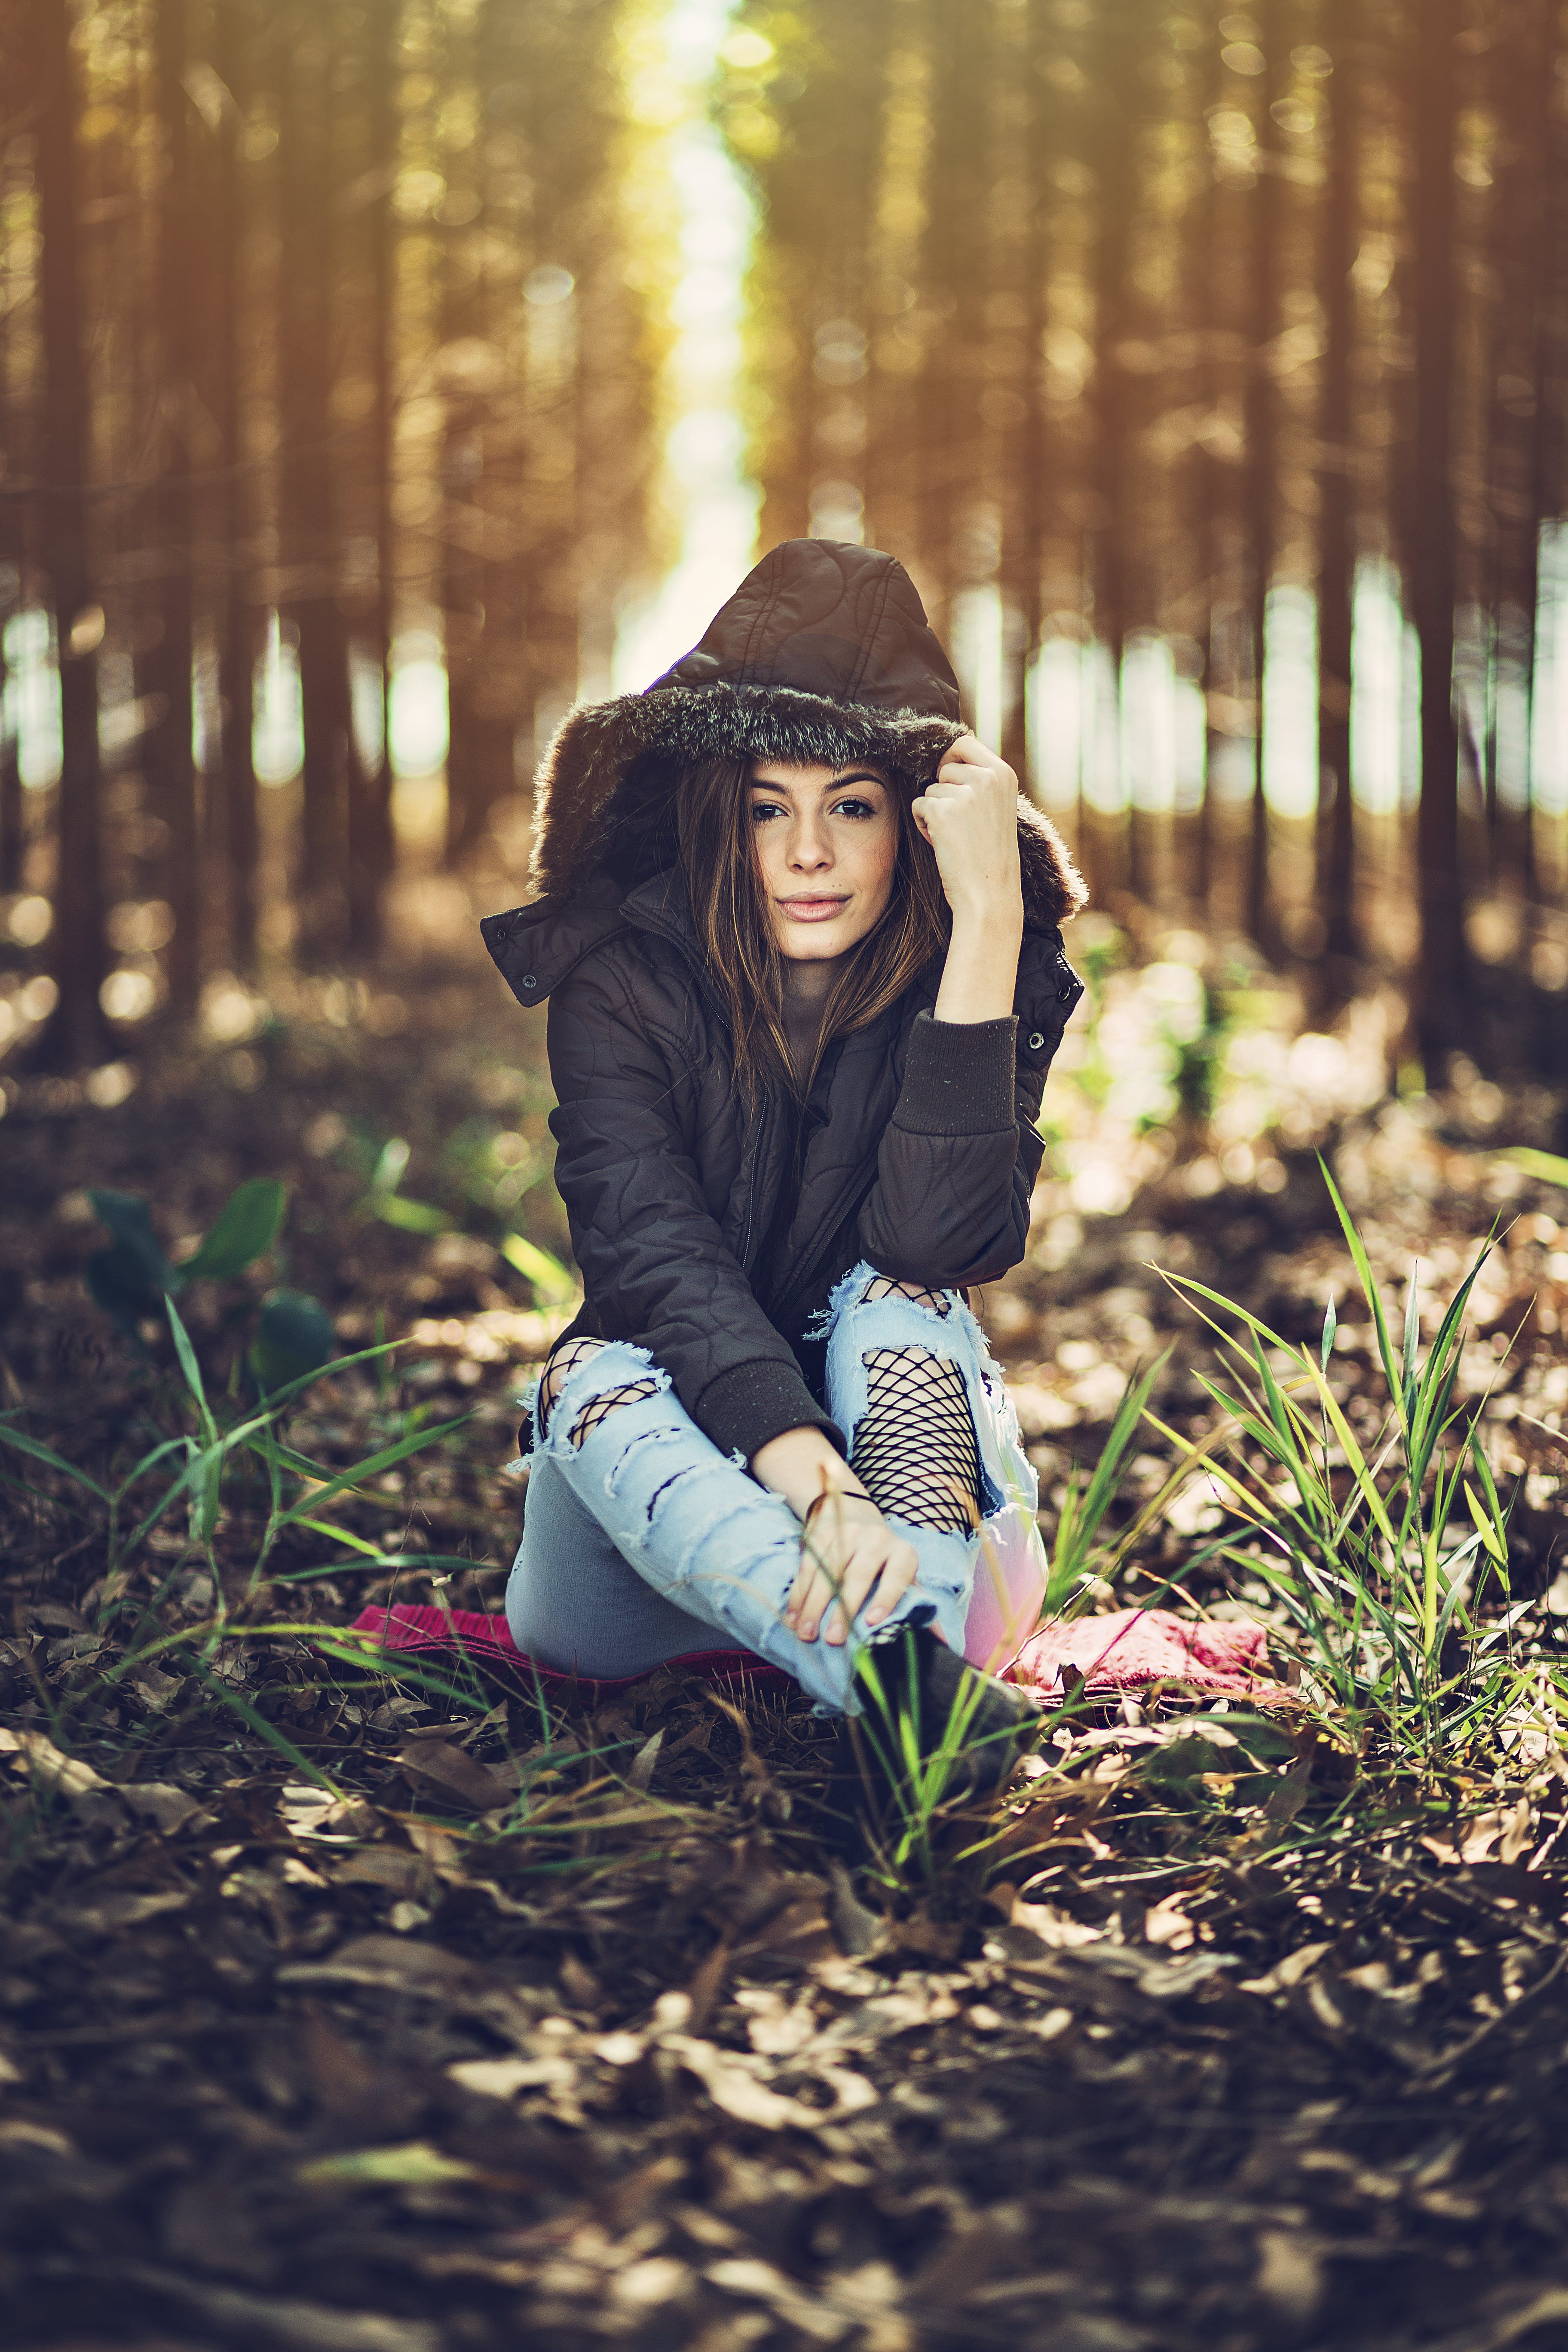 Free stock photo of beauty in nature, fashion, nature photography, photo session